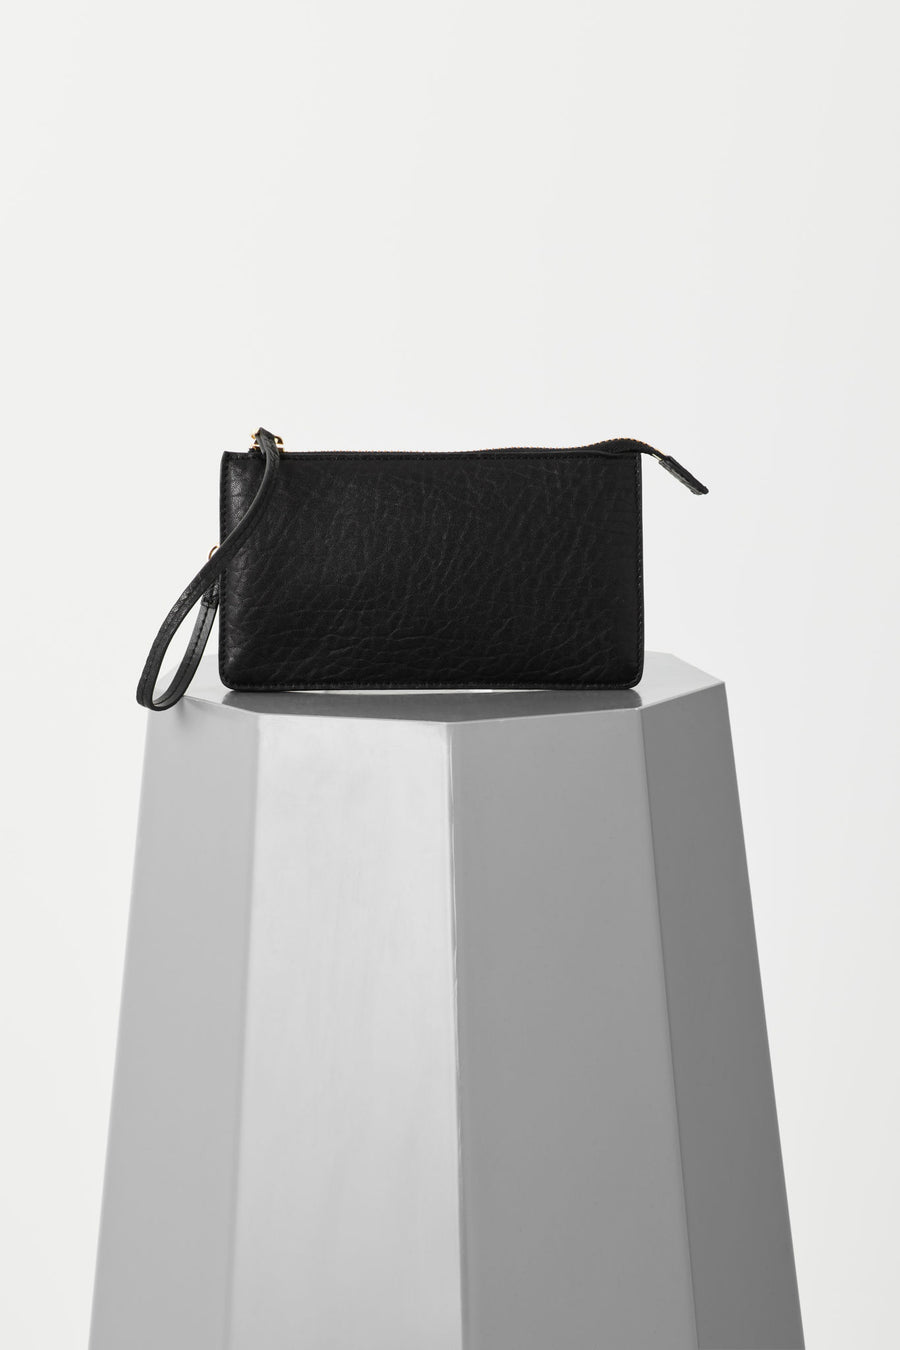 Vash - Polaris Flat Wallet Clutch in Black Bubble Leather